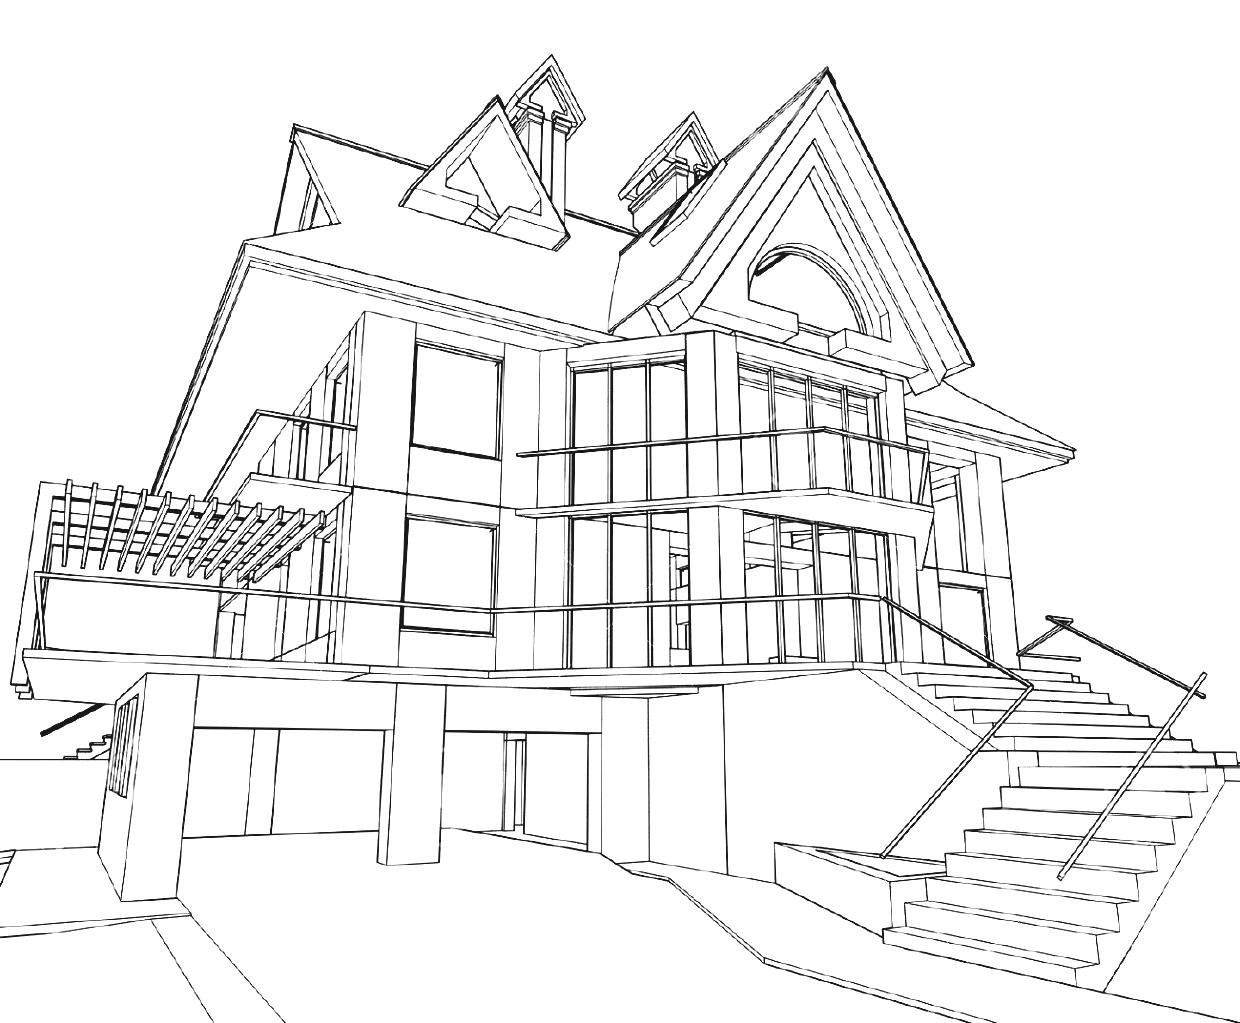 Architecture house drawing at free for for Architecture modern house design 2 point perspective view